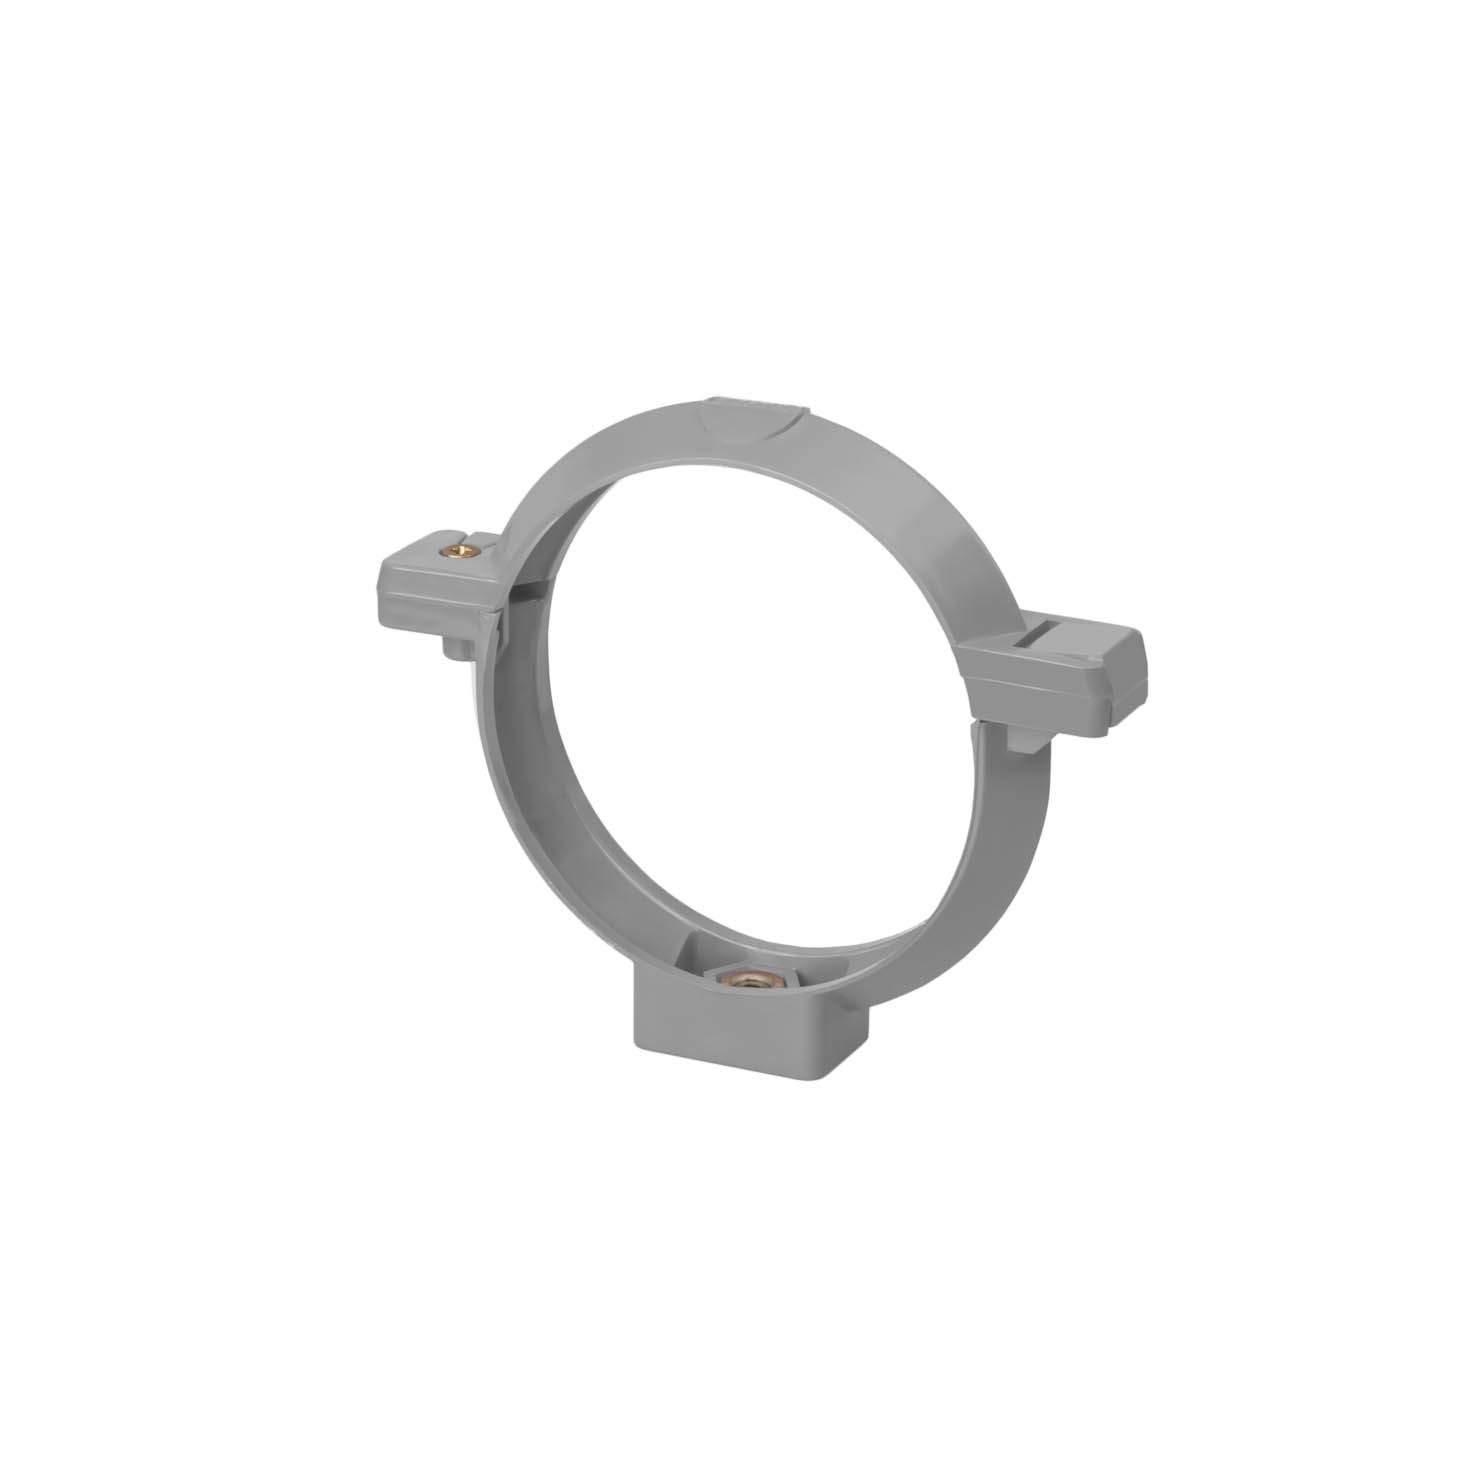 DOWNPIPE BRACKET